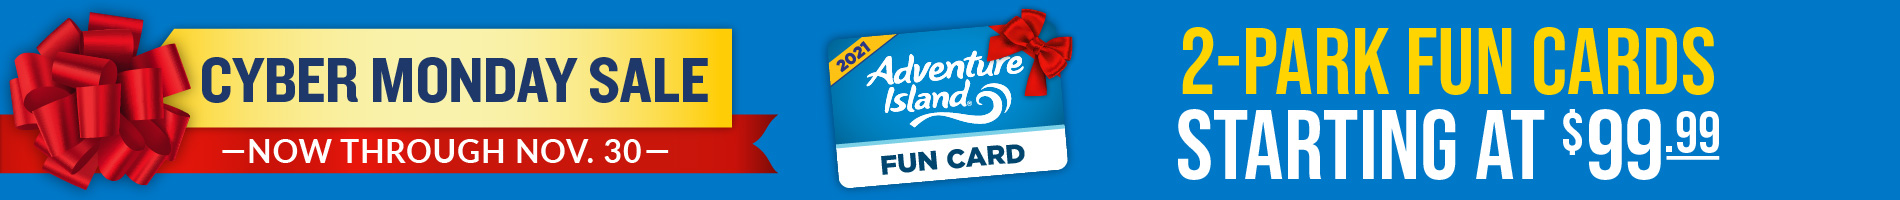 Cyber Monday Sale 2 Park Fun Cards starting at $99.99